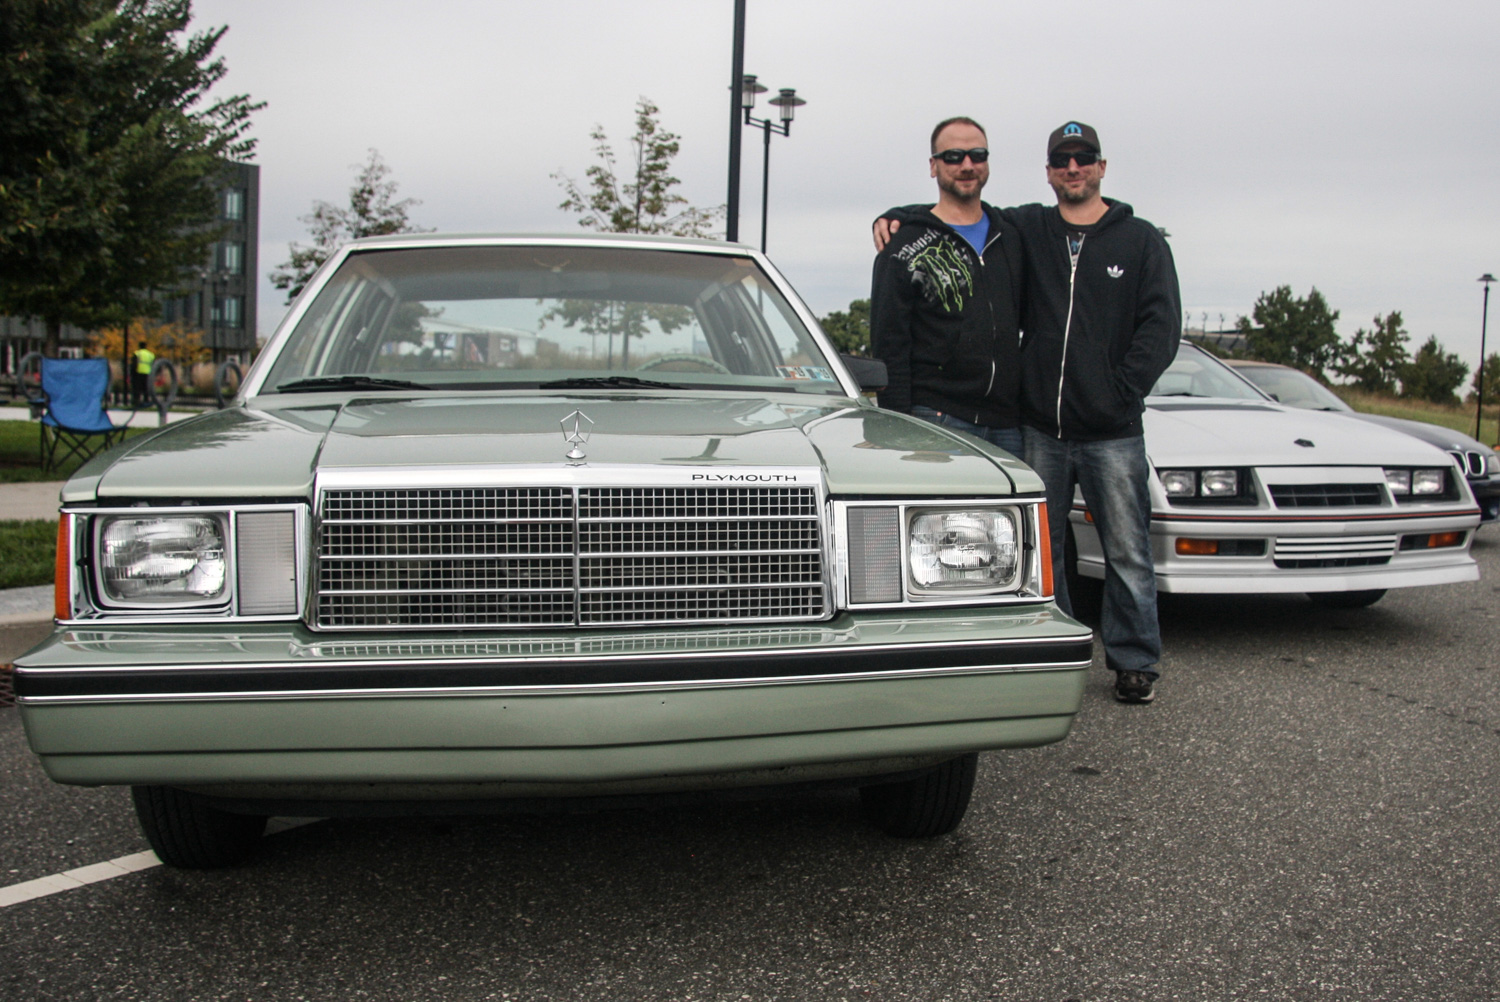 Nate and Matt Flamini collect the cars their parents once owned, and loathed.